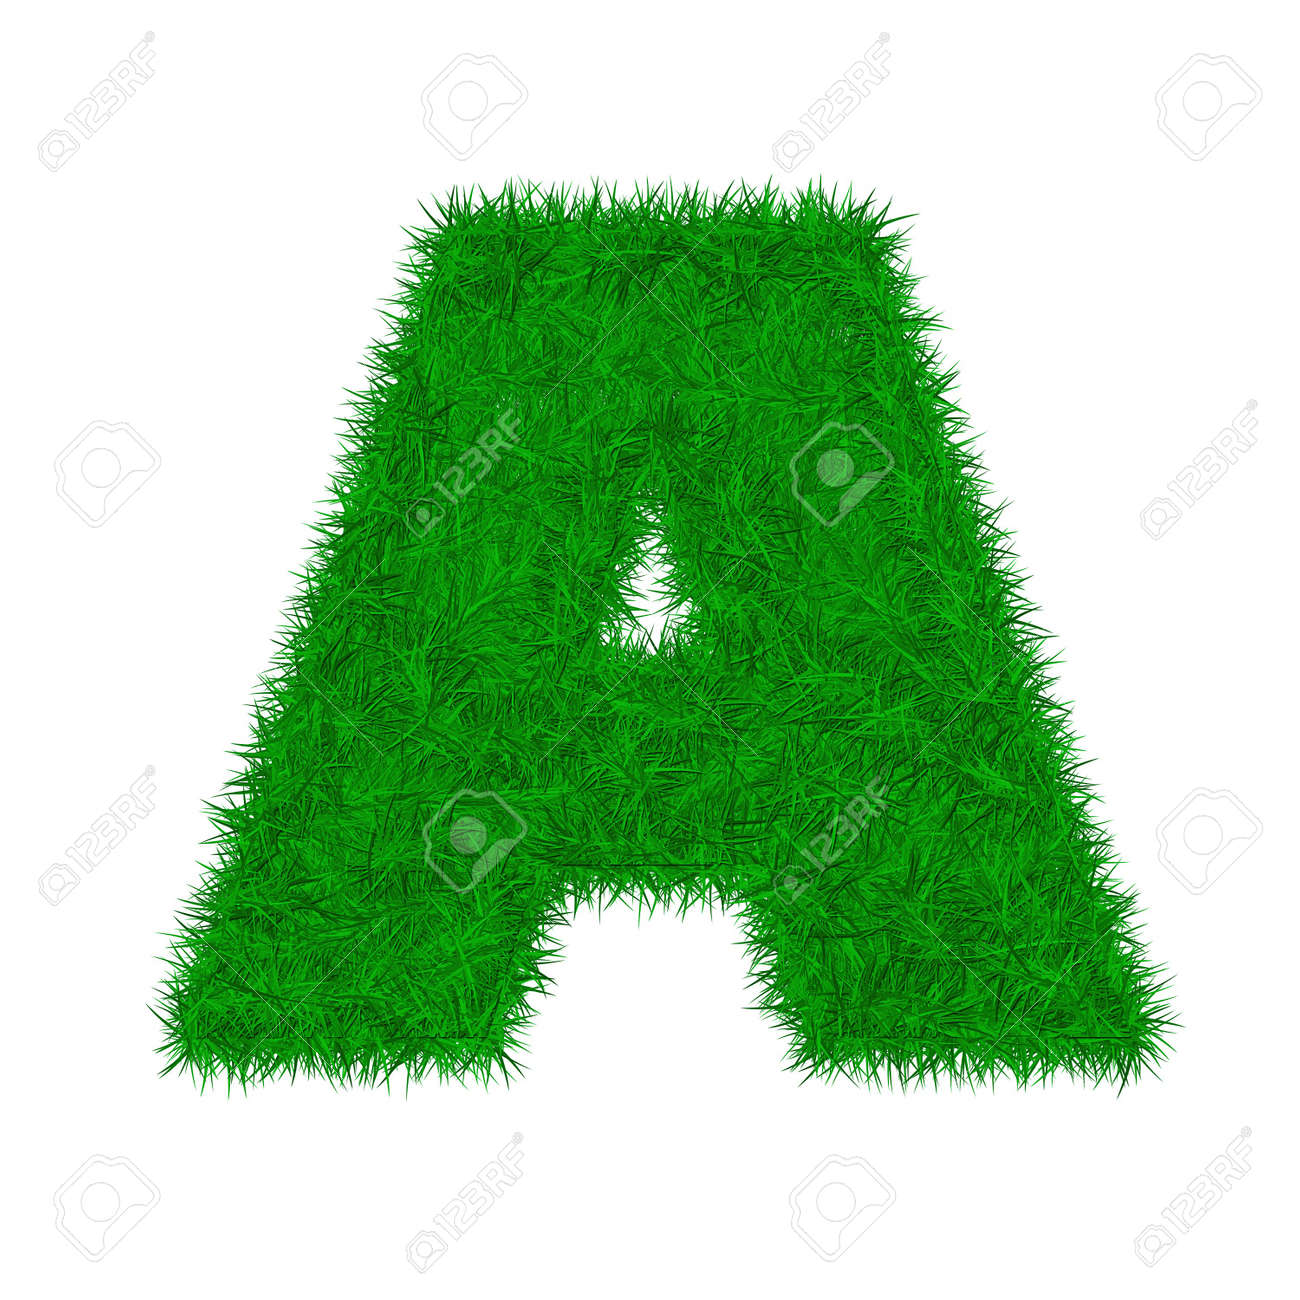 green grass letter font isolated o white background Stock Photo - 7208463